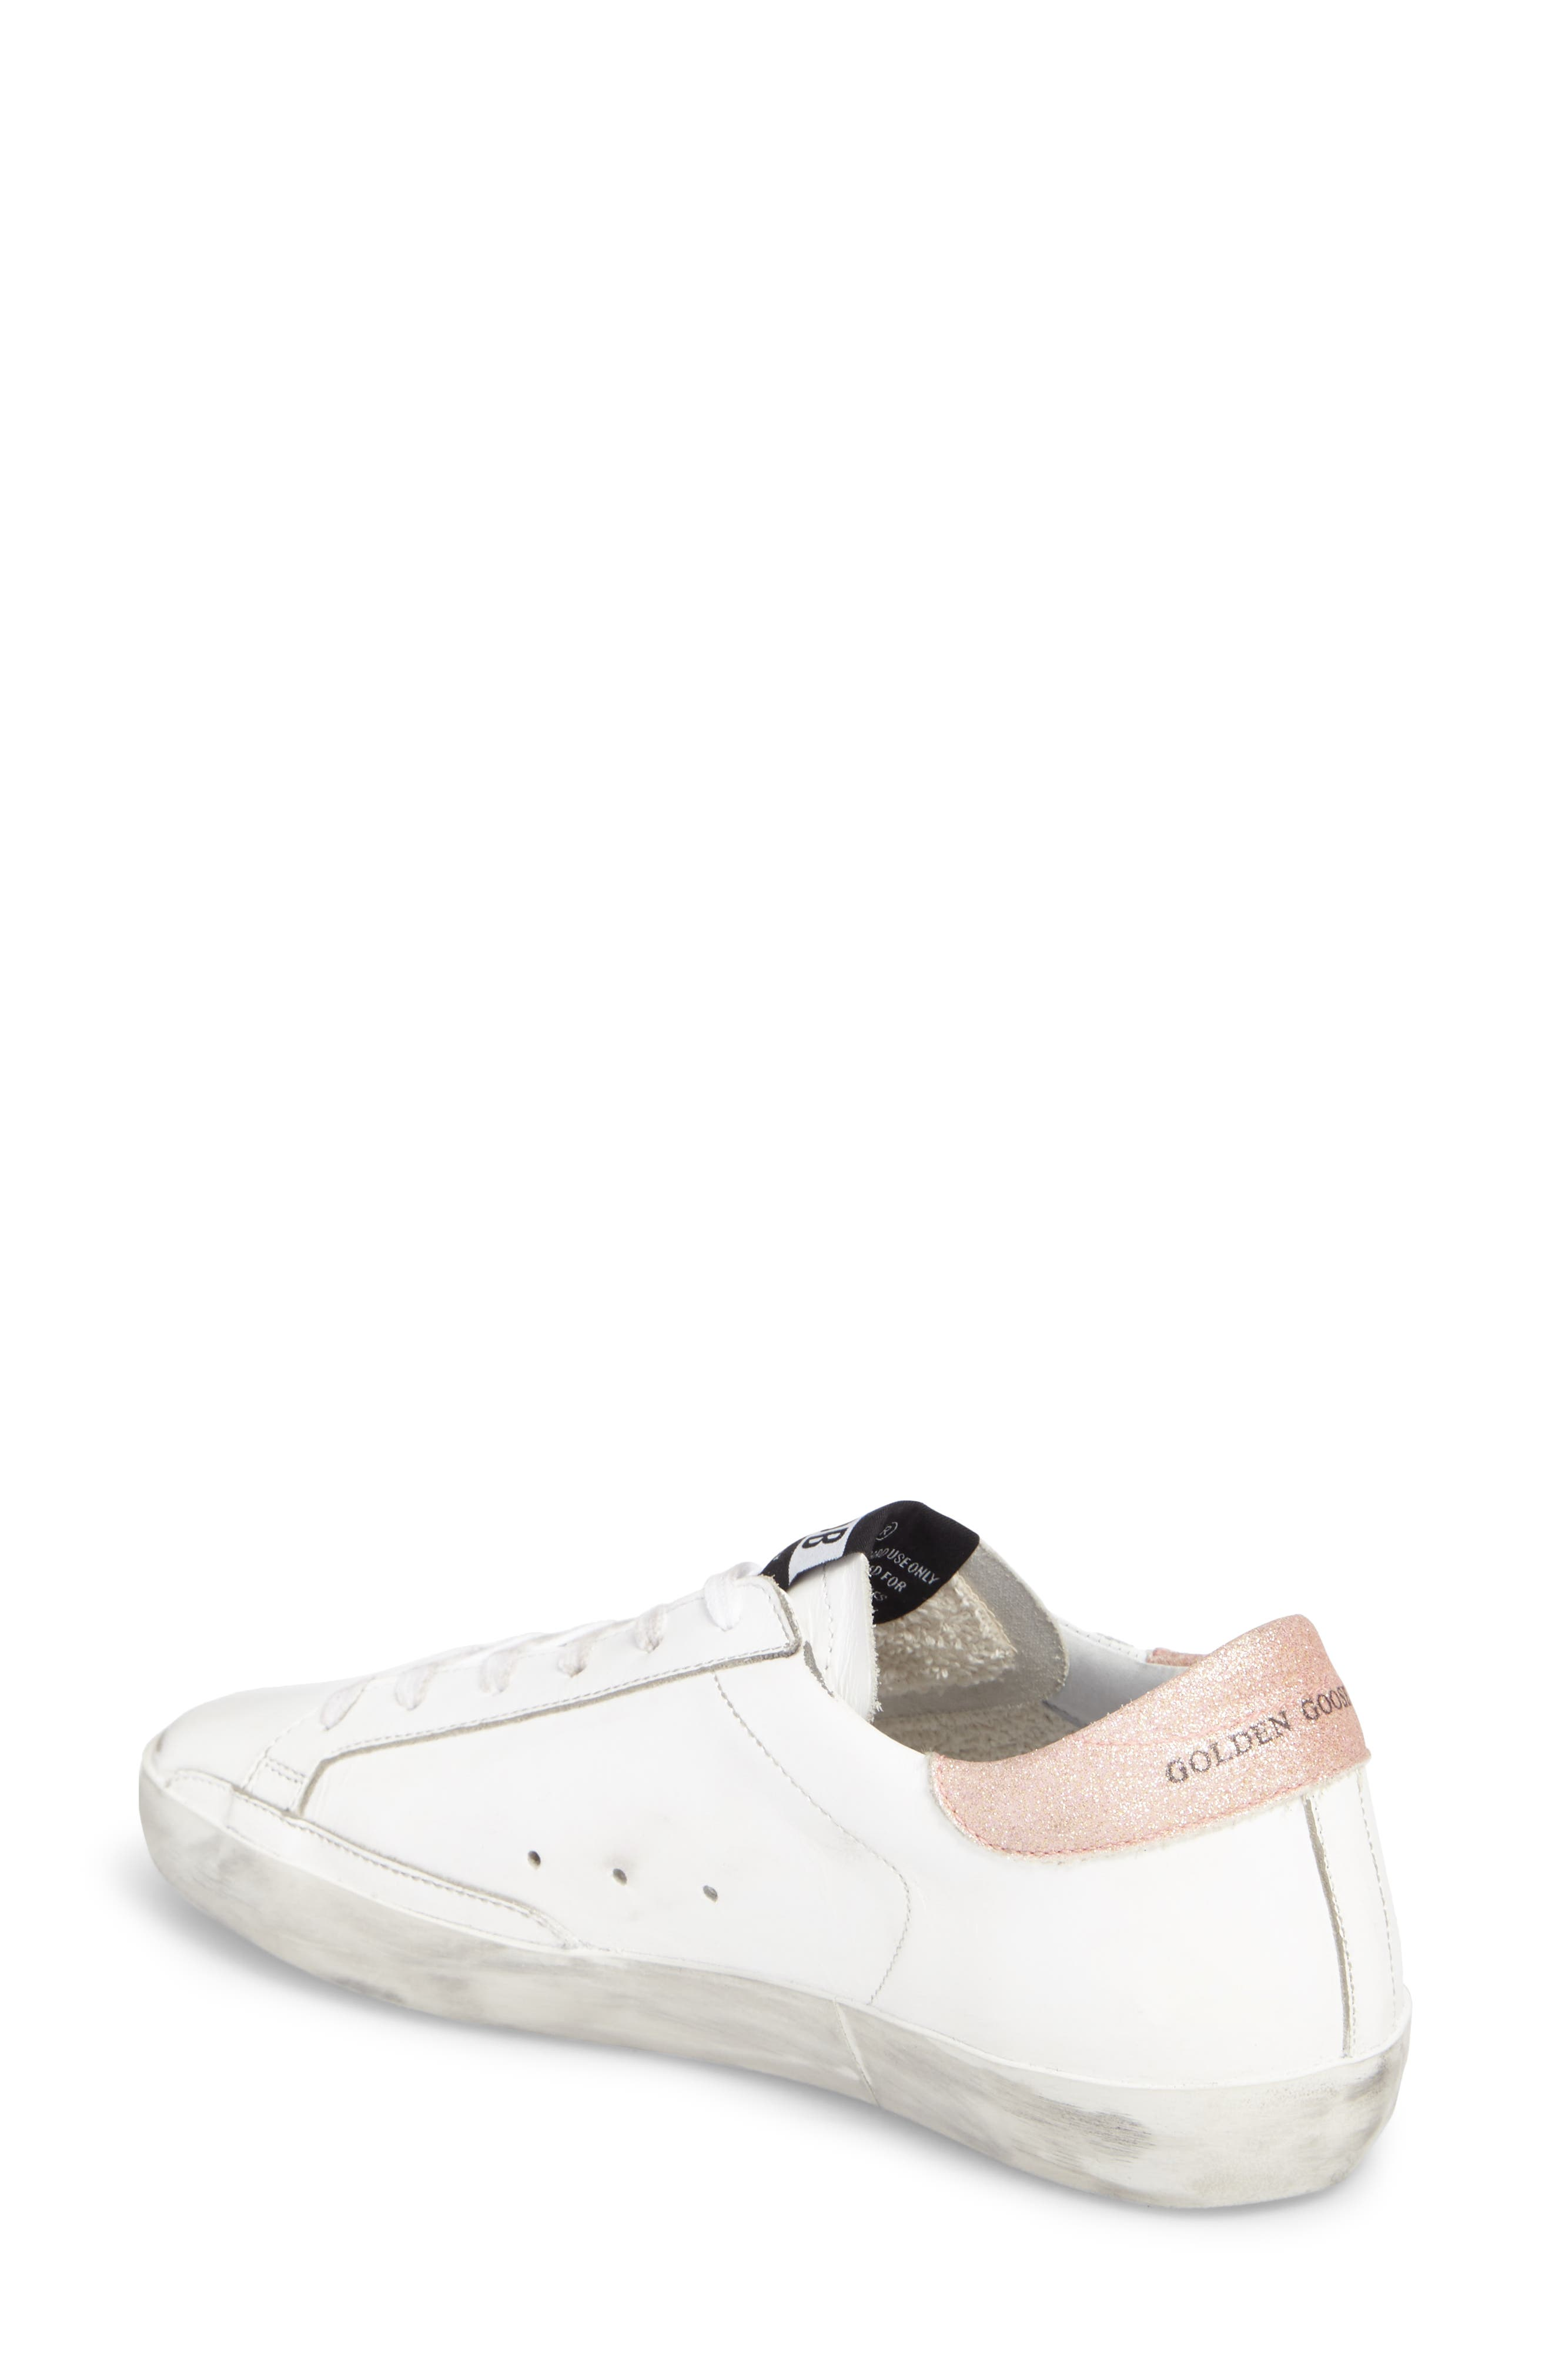 Superstar Low Top Sneaker,                             Alternate thumbnail 2, color,